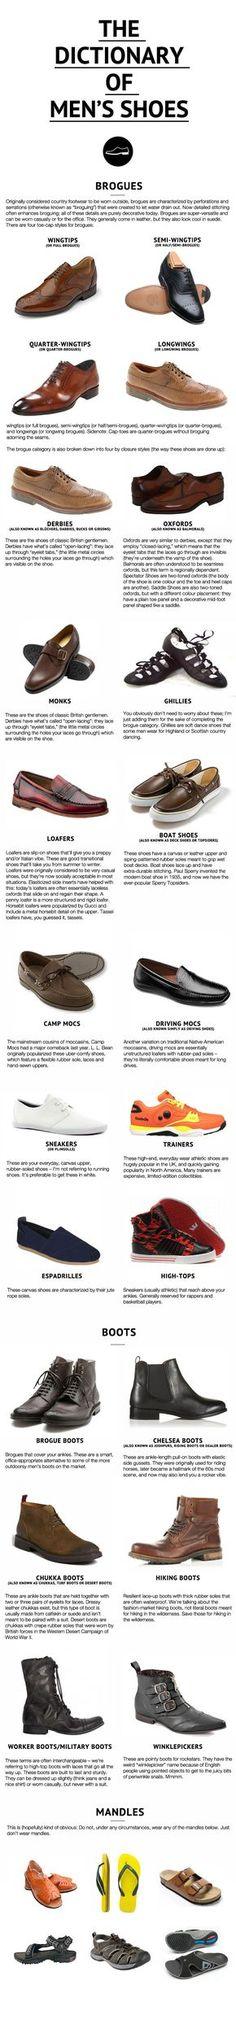 half off 3e8e1 6d912 The Dictionary of Men s Shoes  How Shoes Can Make You More Attractive As A  Man